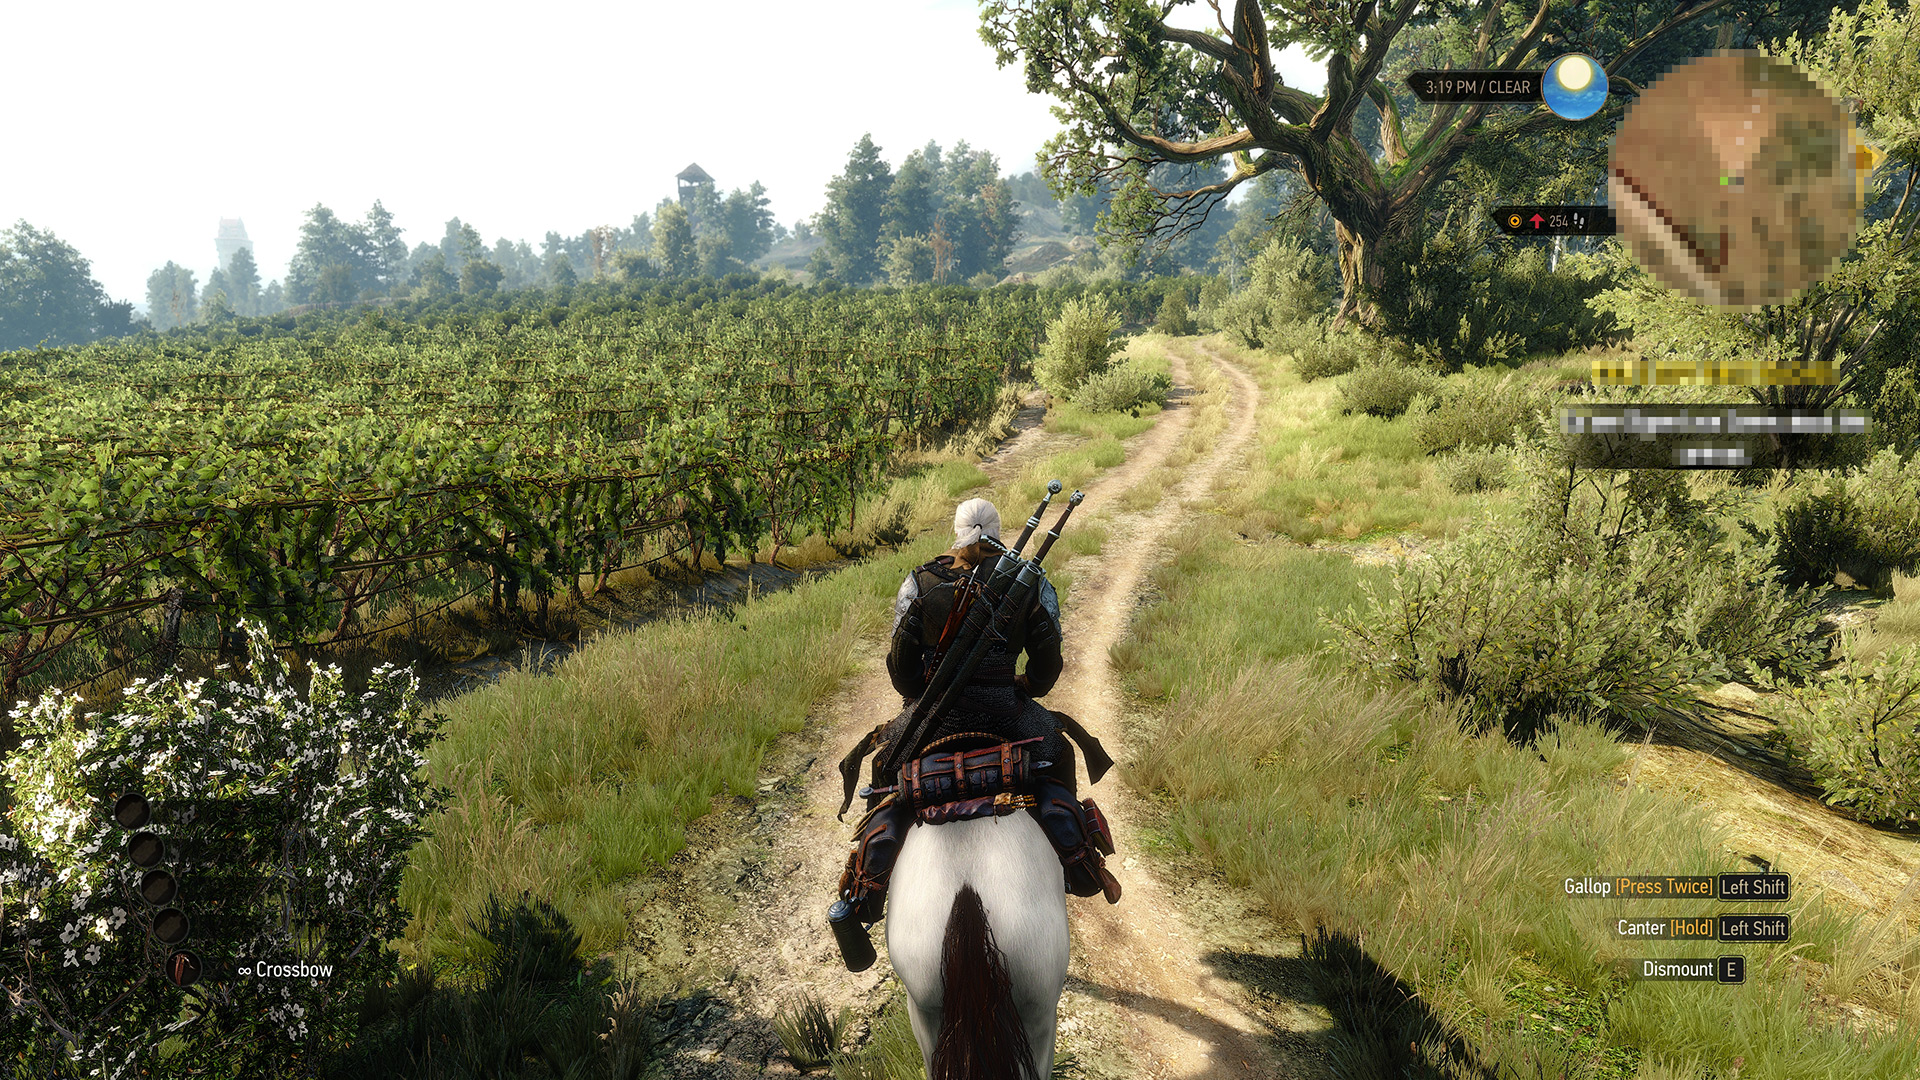 Geralt of Rivia rides a horse across the countryside in The Witcher 3: Wild Hunt.